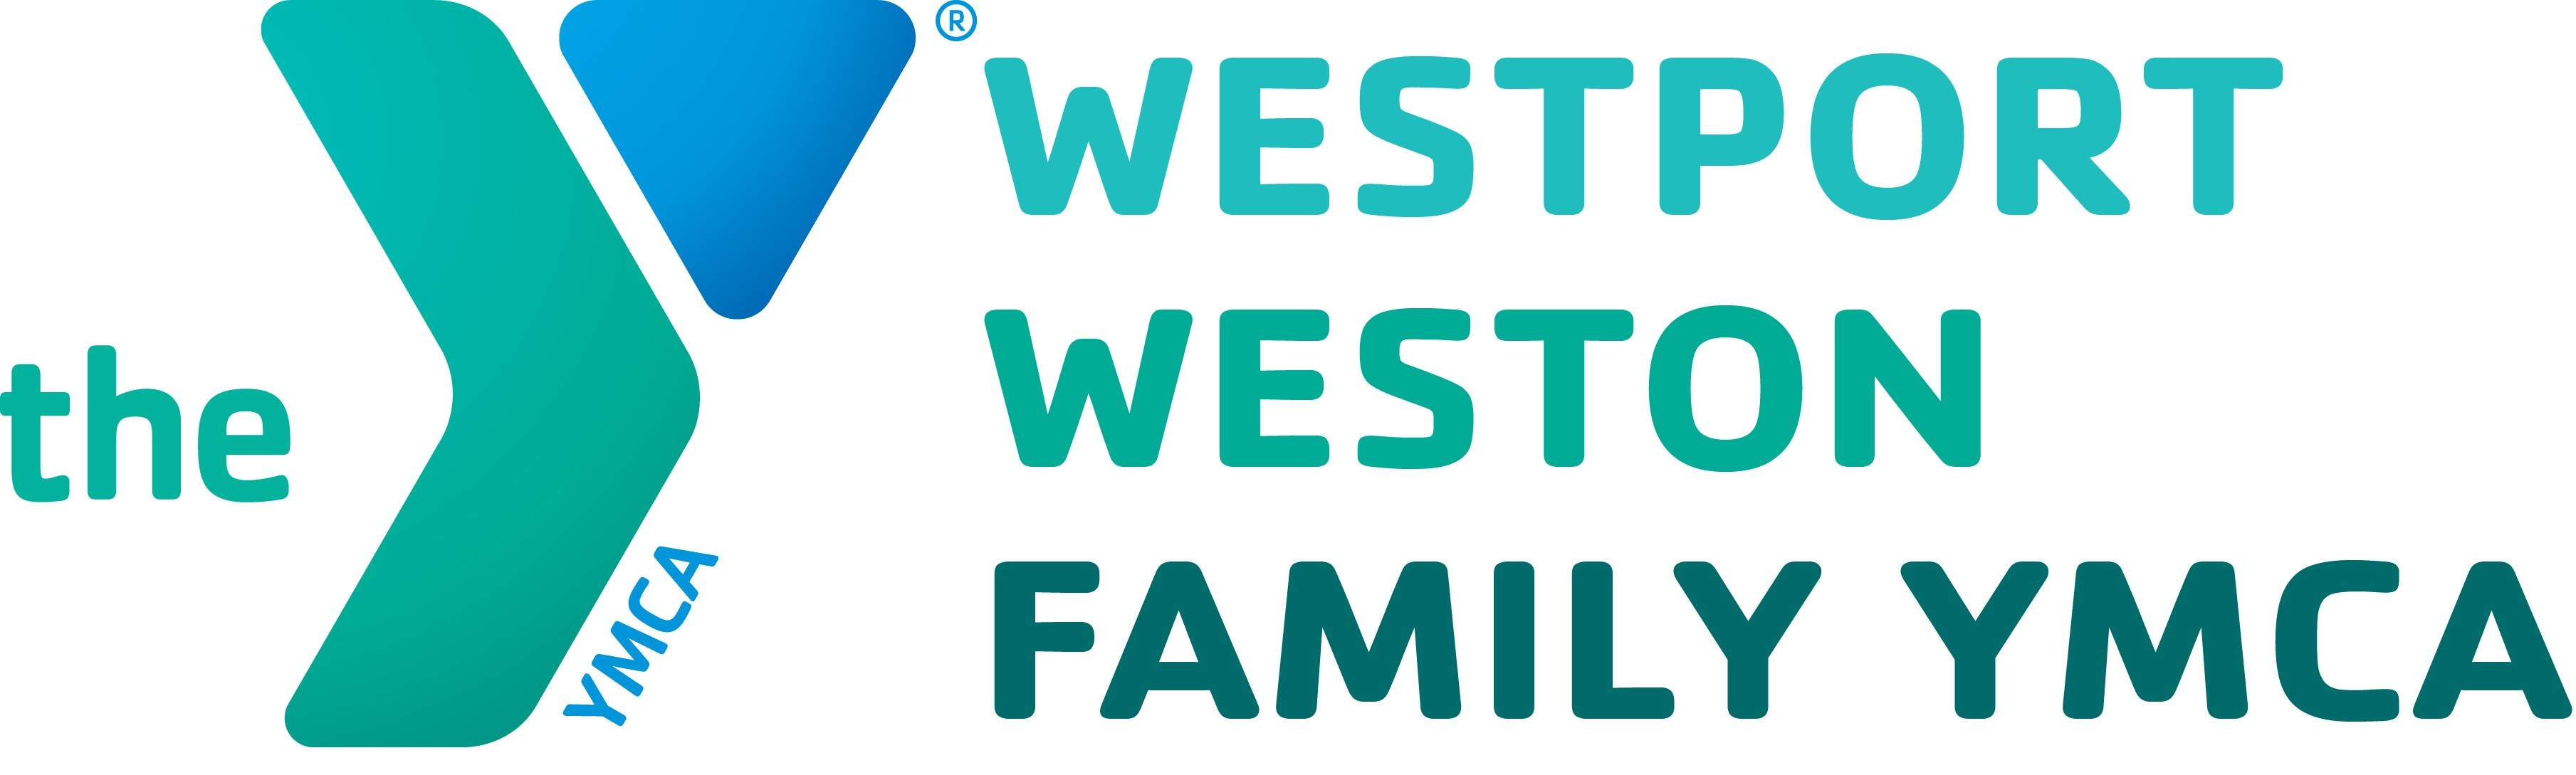 The Westport Weston Family YMCA